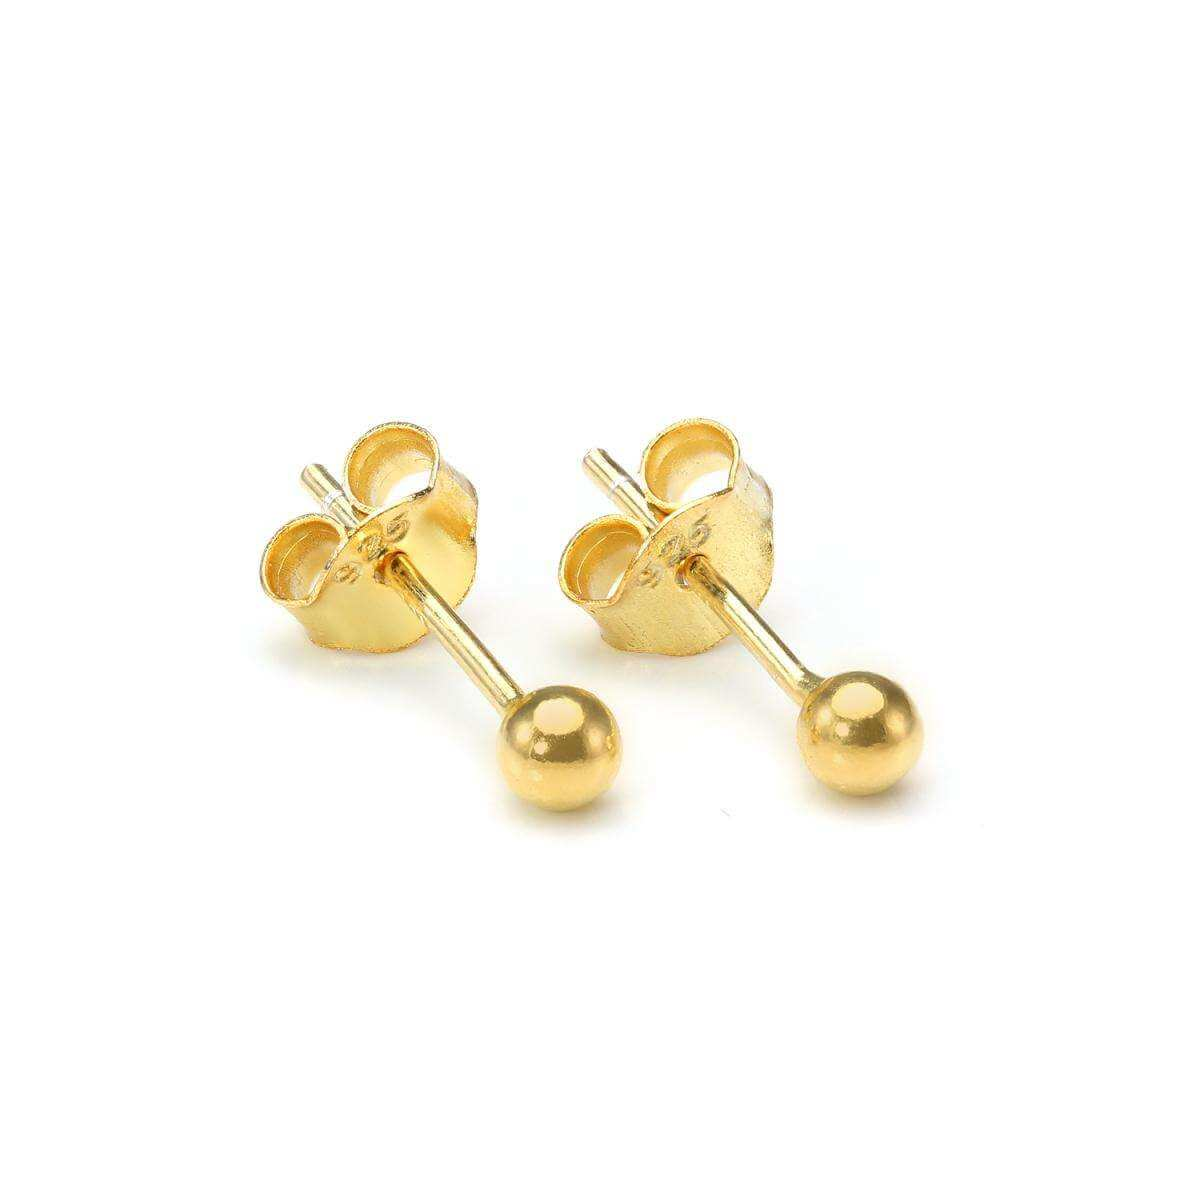 Gold Dipped Small 3mm Sterling Silver Ball Stud Earrings